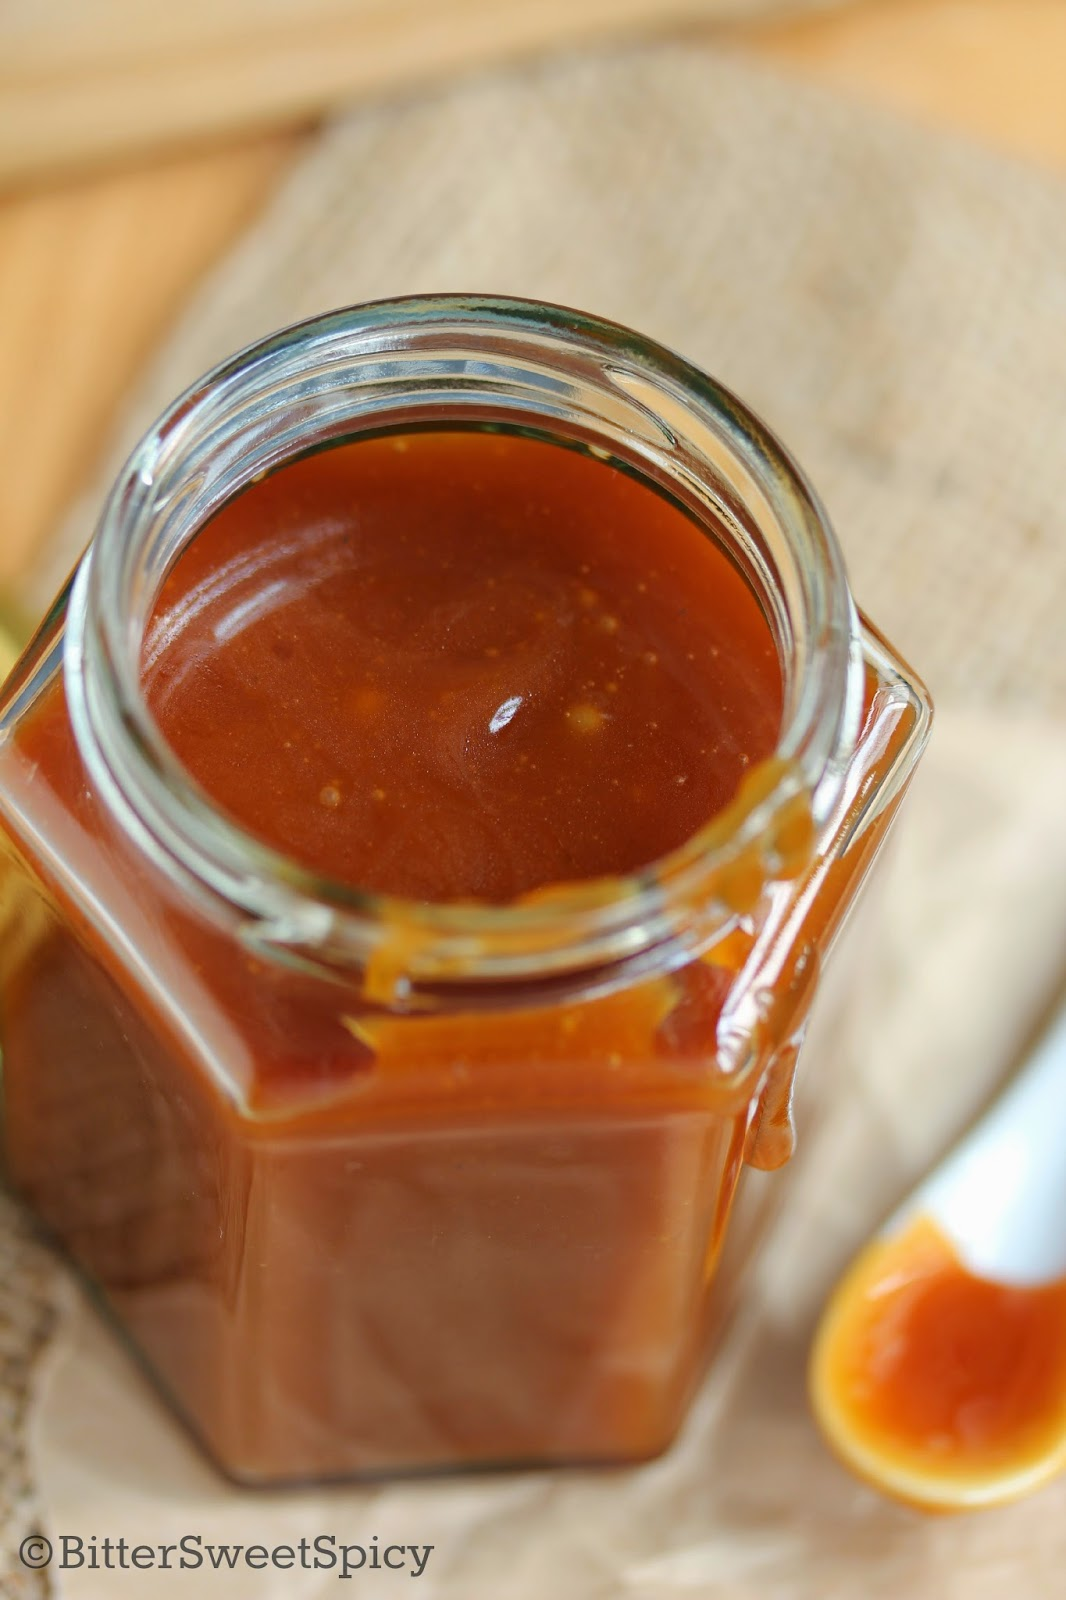 Salted Caramel Sauce @ BitterSweetSpicy